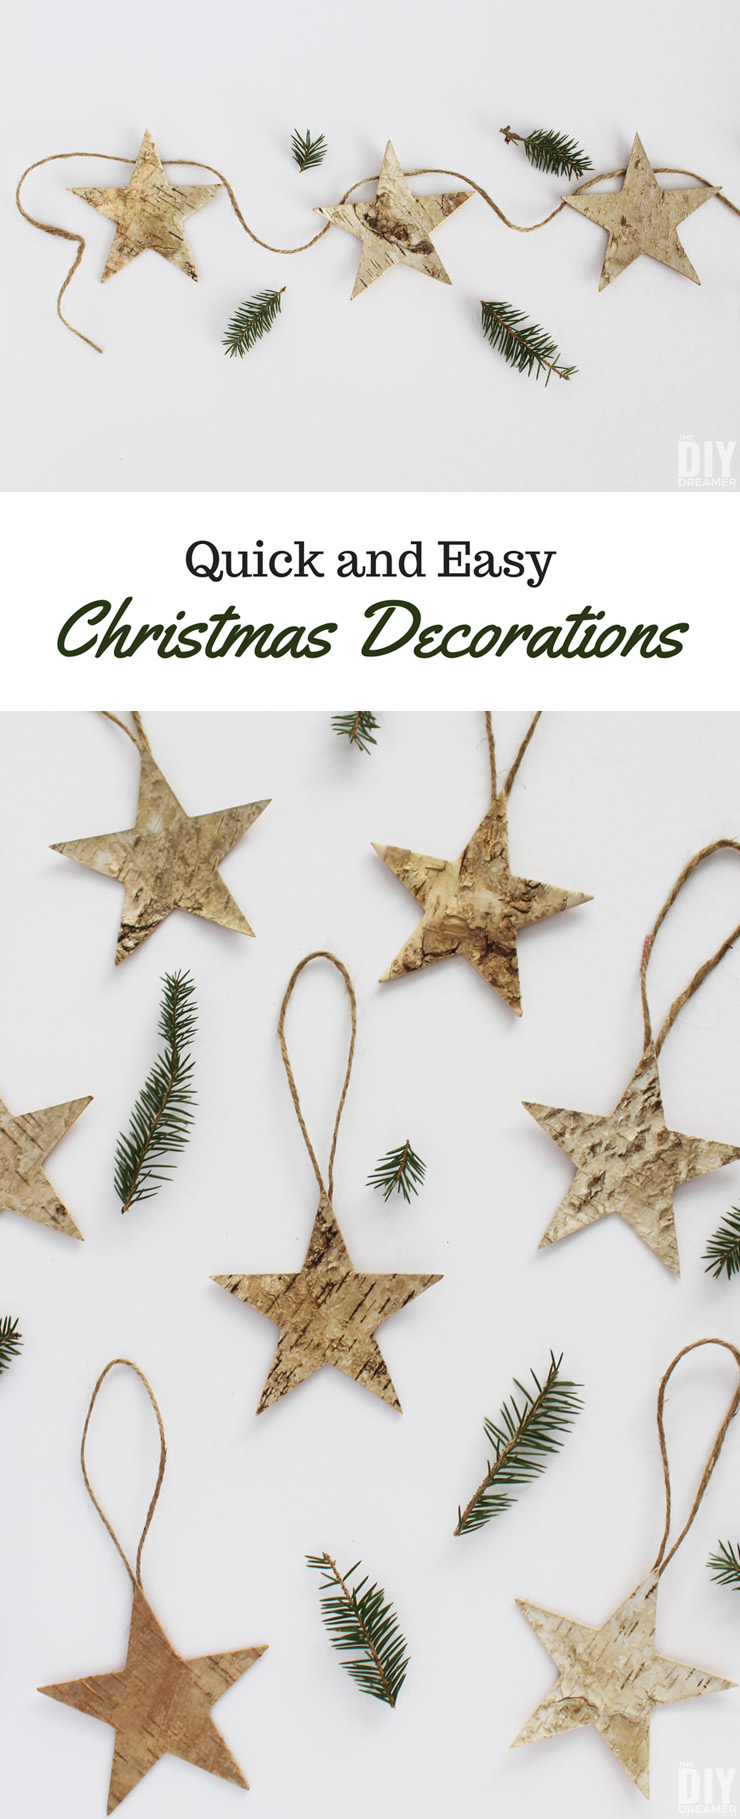 Quick and Easy Christmas Decorations that you can make this holiday season. Perfect for a Rustic Christmas.